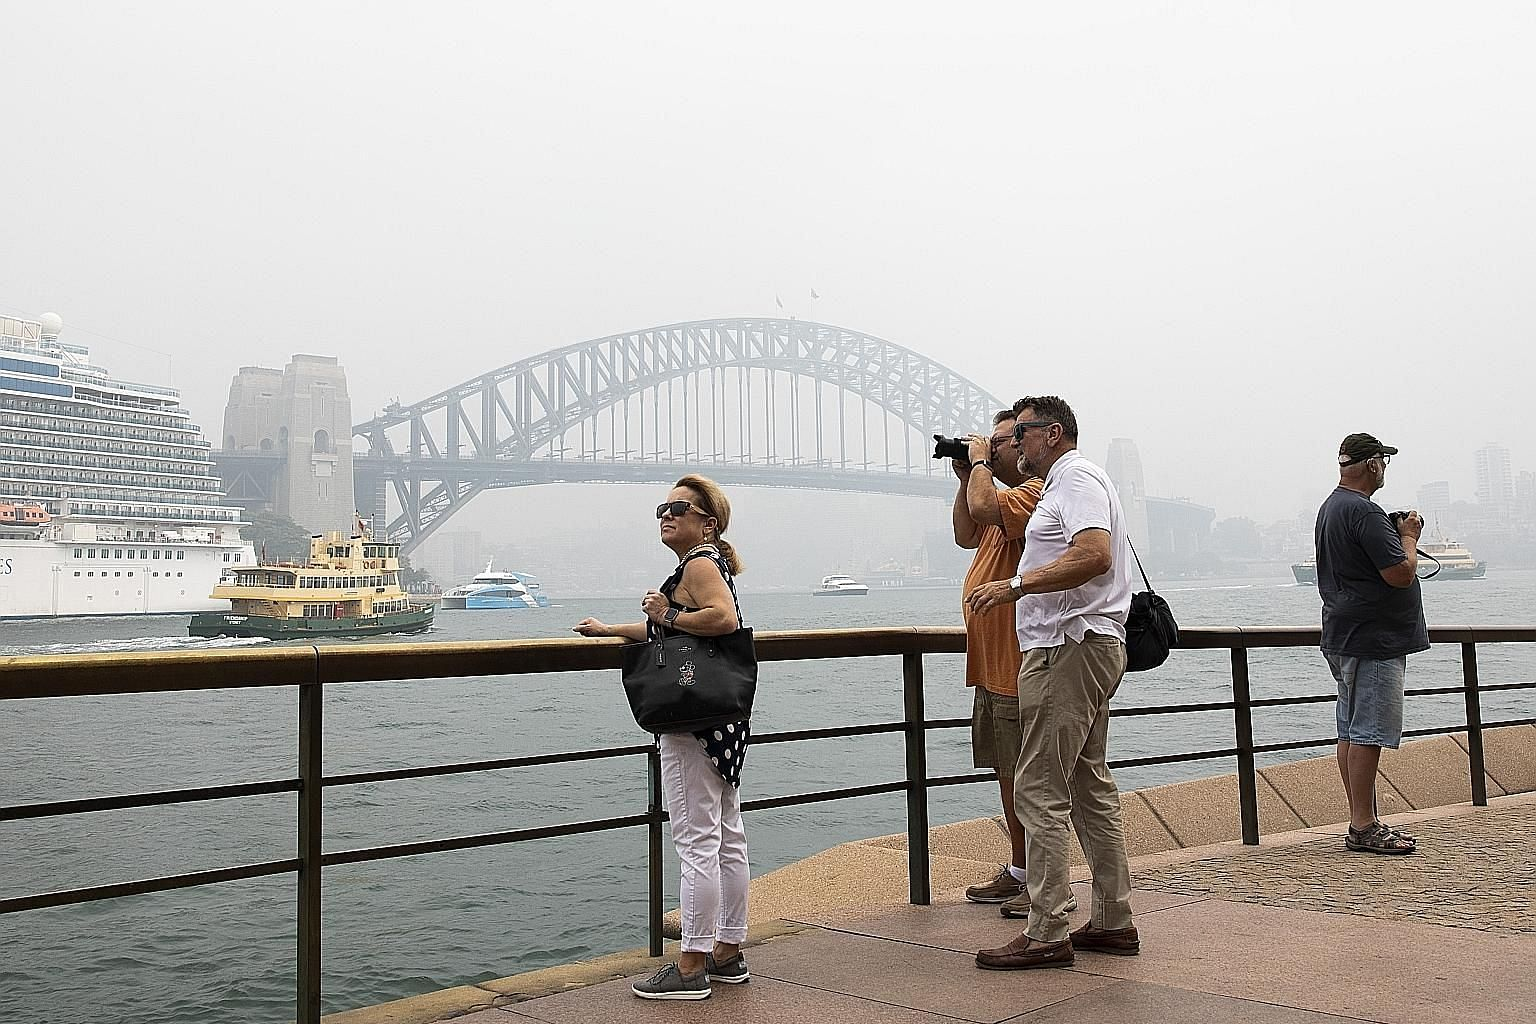 Sydney shrouded in haze earlier this month. The Australian government said the A$76 million (S$70 million) aid is an initial push to help the country's A$152 billion tourism industry, which accounts for more than 3 per cent of annual economic output.